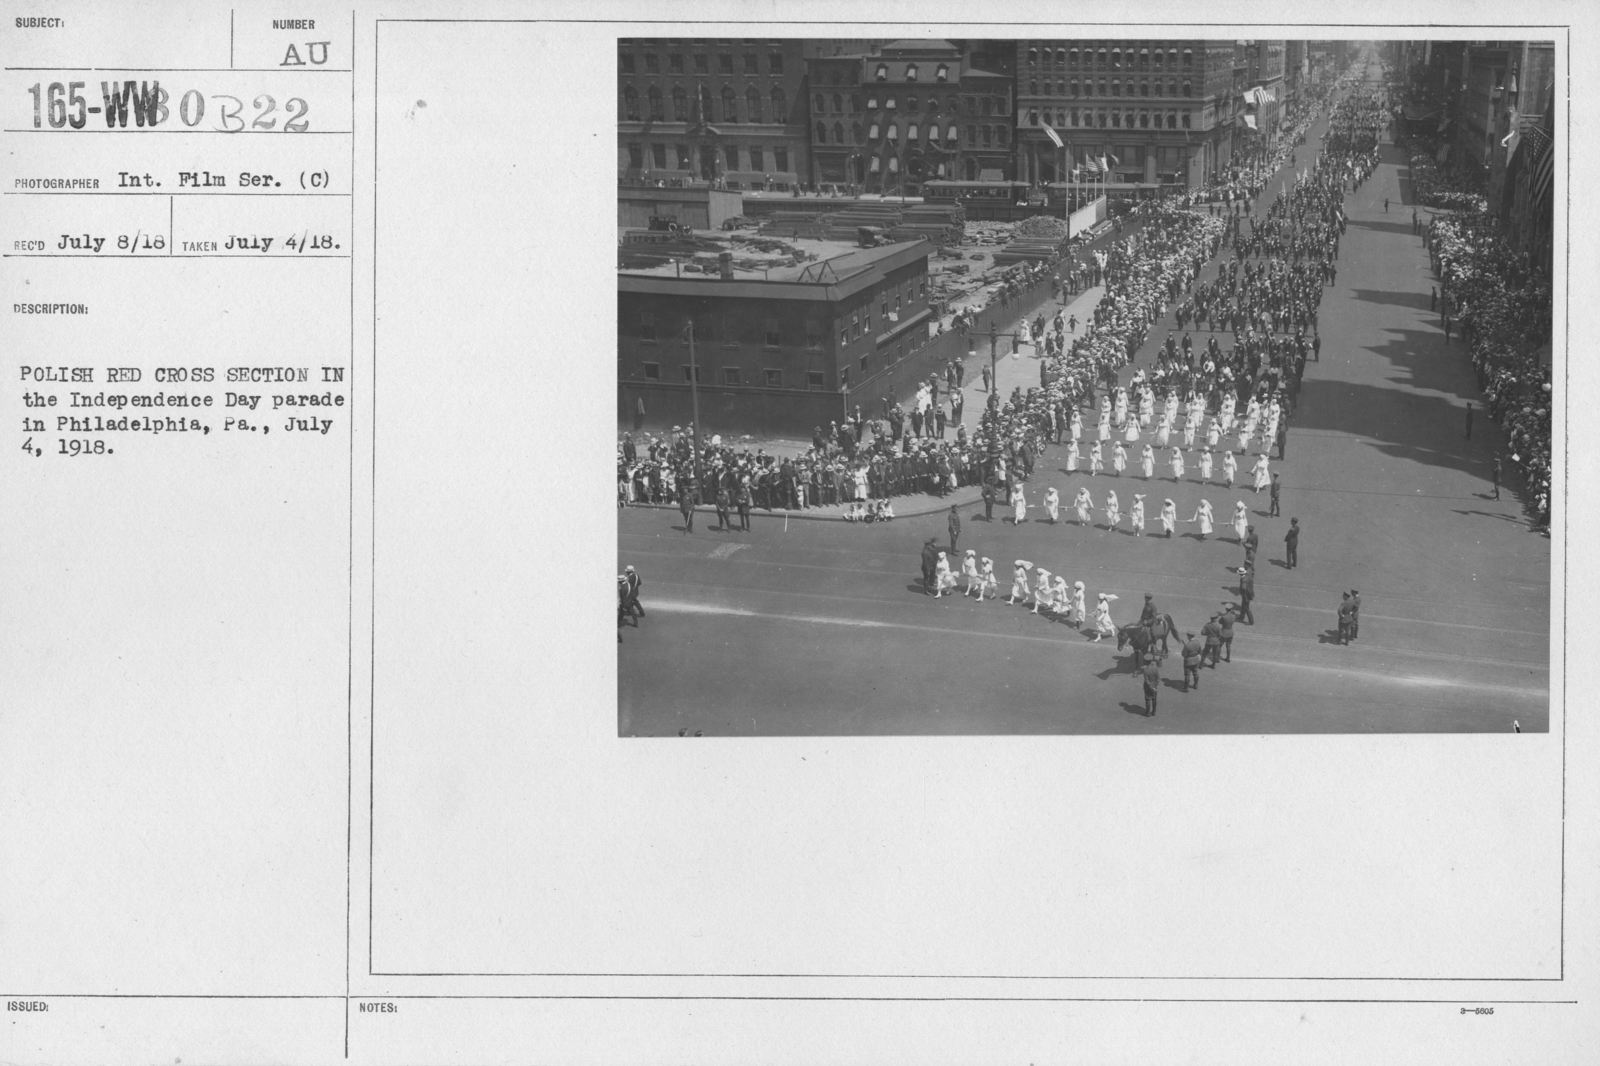 Ceremonies - Independence Day Parades (All States) - Polish Red Cross section in the Independence Day Parade in Philadelphia, PA., July 4, 1918